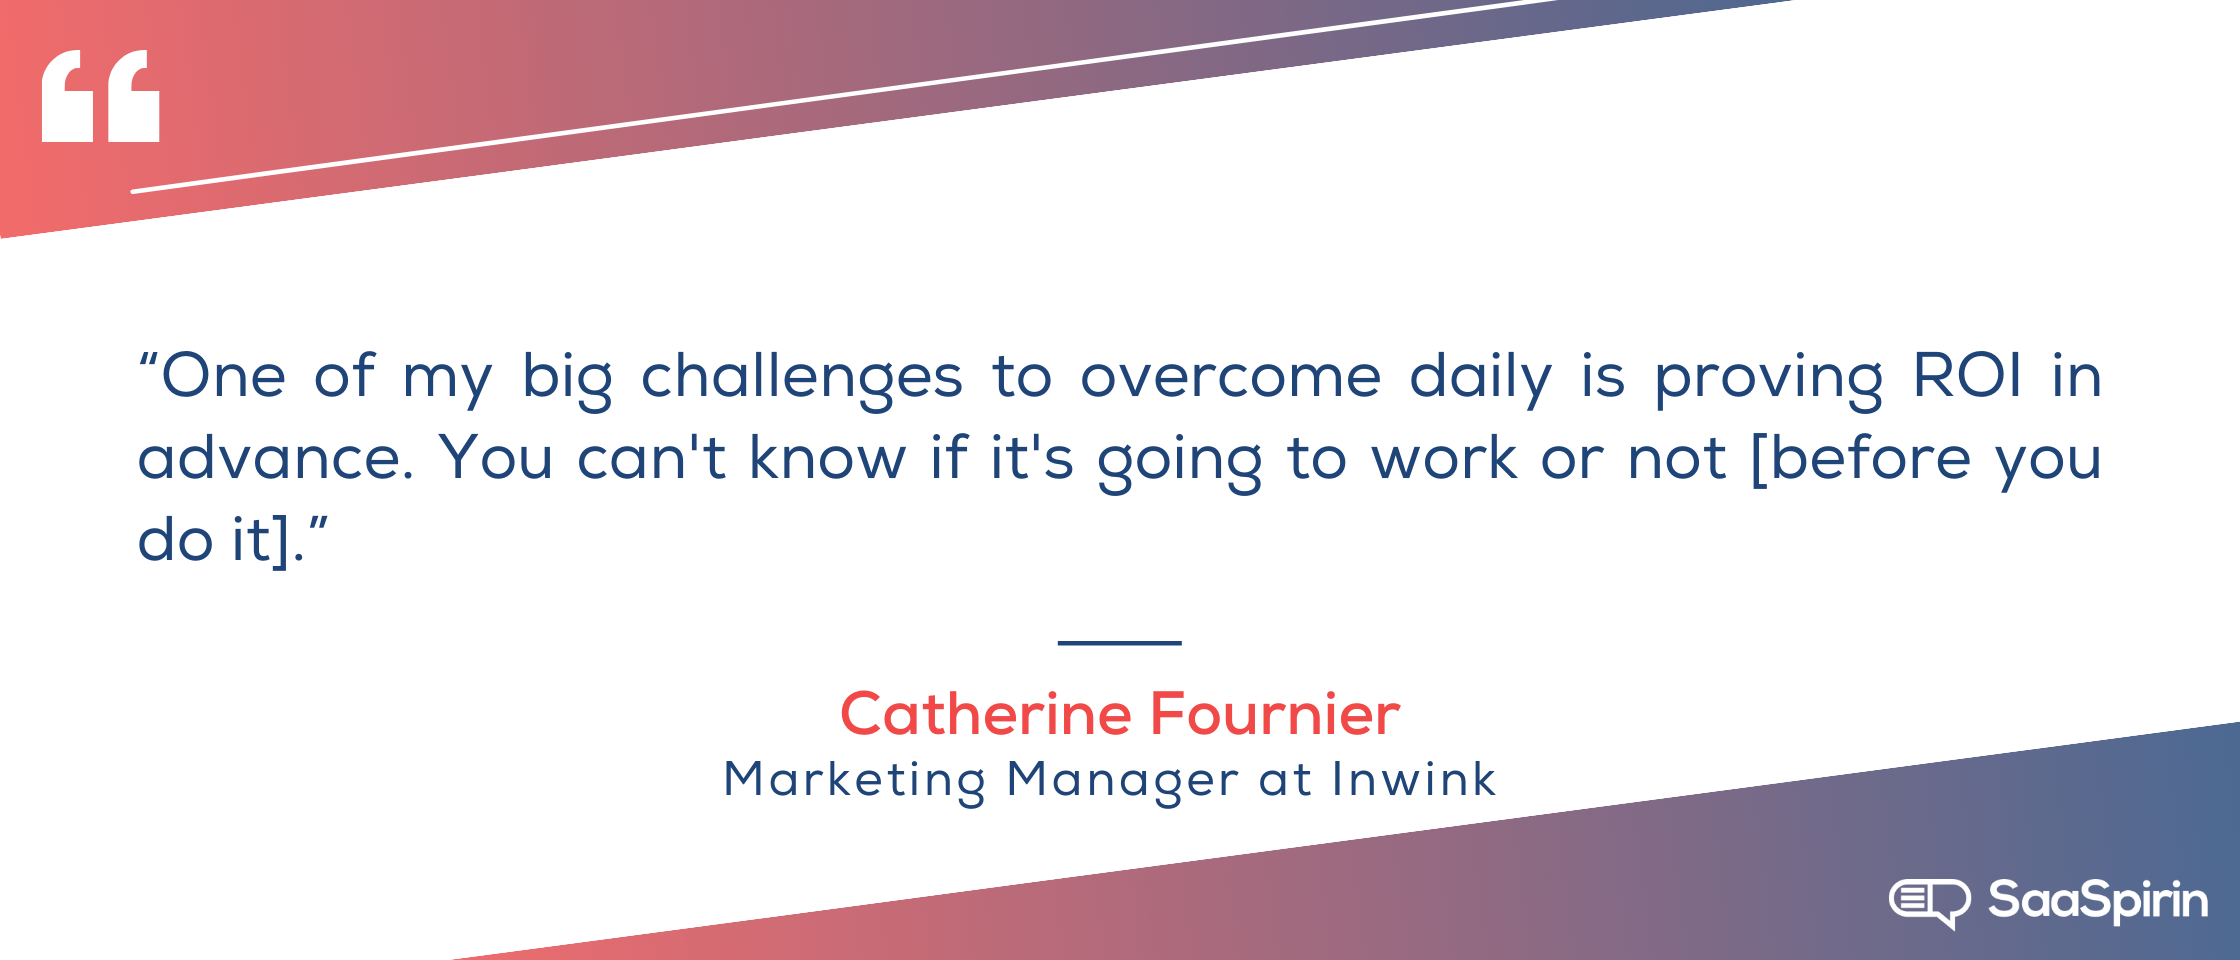 One-of-my-big-challenges-to-overcome-daily-is-proving-ROI-in-advance-You-cant-know-if-its-going-to-work-or-not-before-you-do-it.png